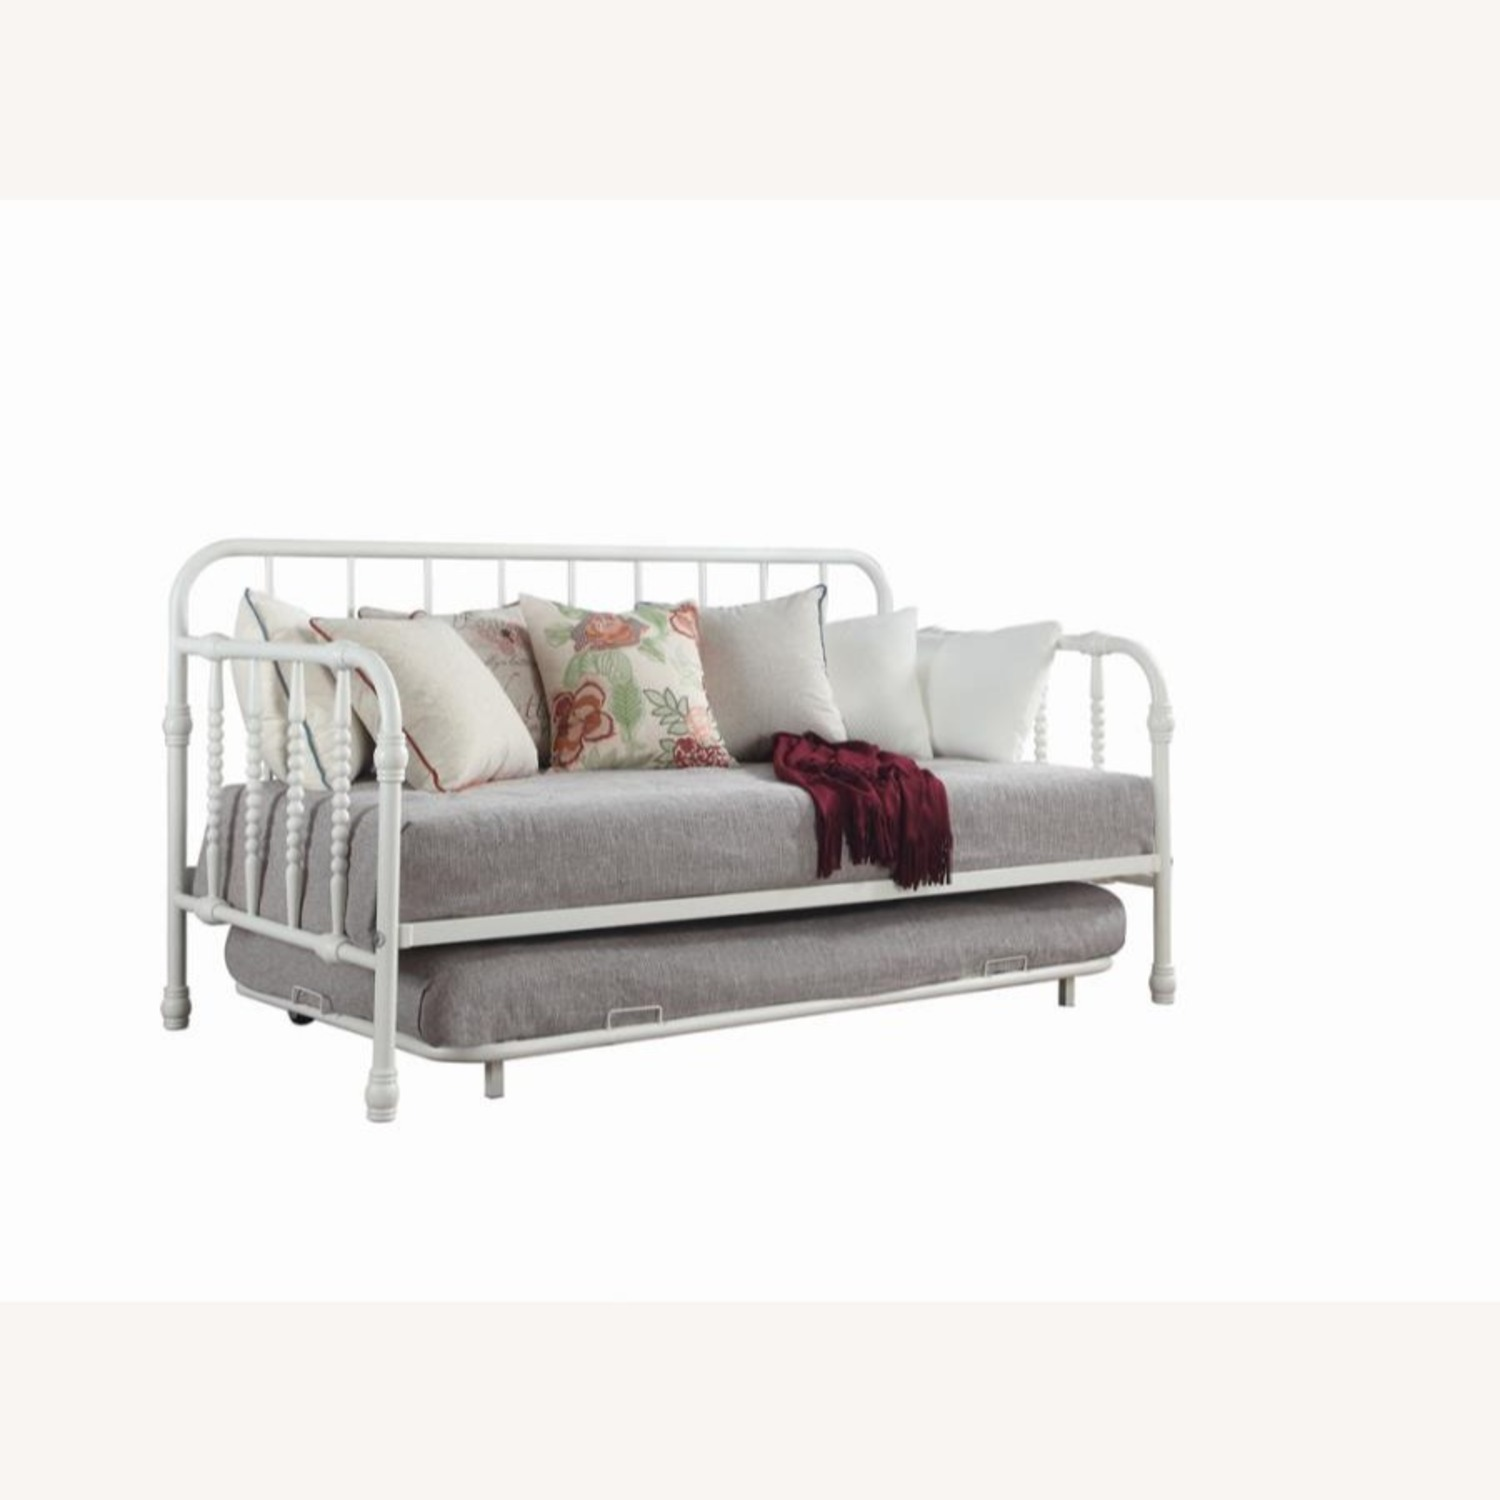 Twin Daybed W/ Trundle In White Steel Tubing - image-0